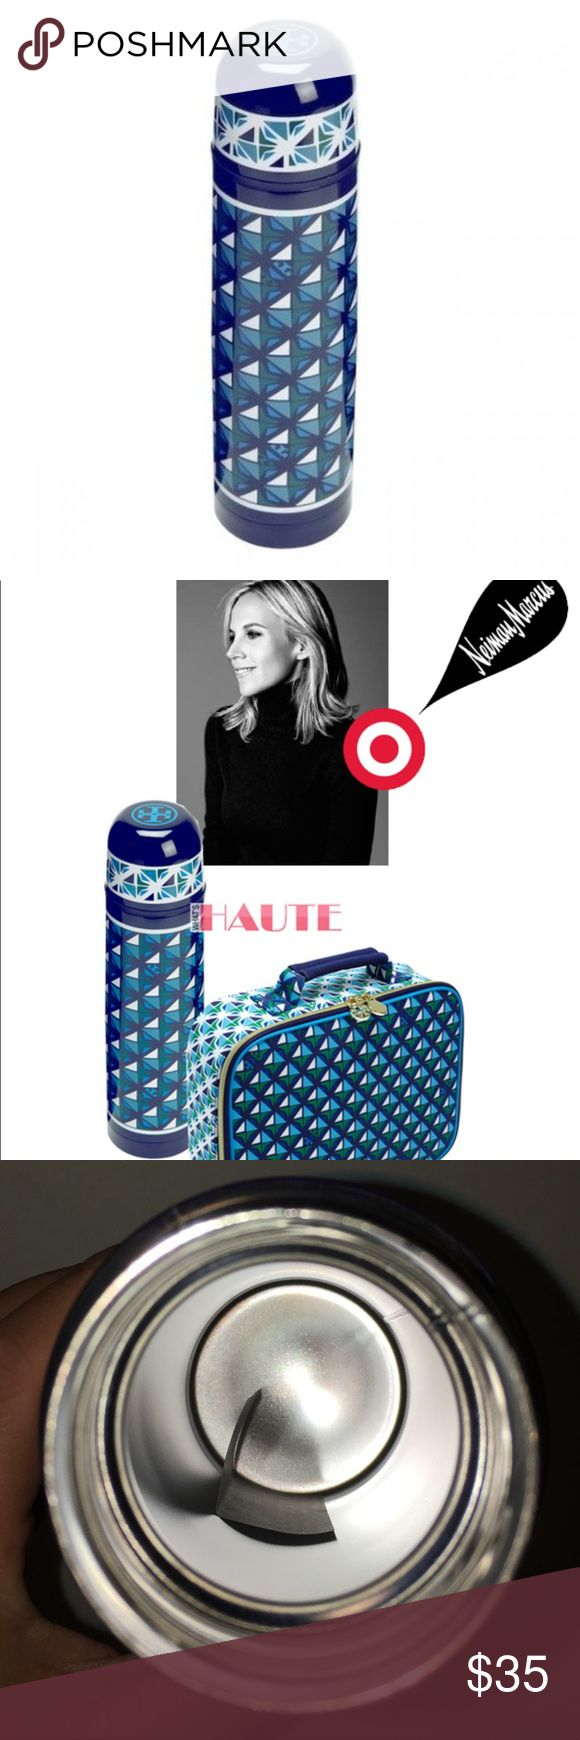 NEW Target Neiman Marcus Tory Burch Thermos Flask NEW. This is from a 2014 collaboration between Target and Neiman Marcus and is now discontinued. Does not come with original packaging and has minor signs of wear on the bottom from being stored in my cabinet. Has not been used. Tory Burch Other